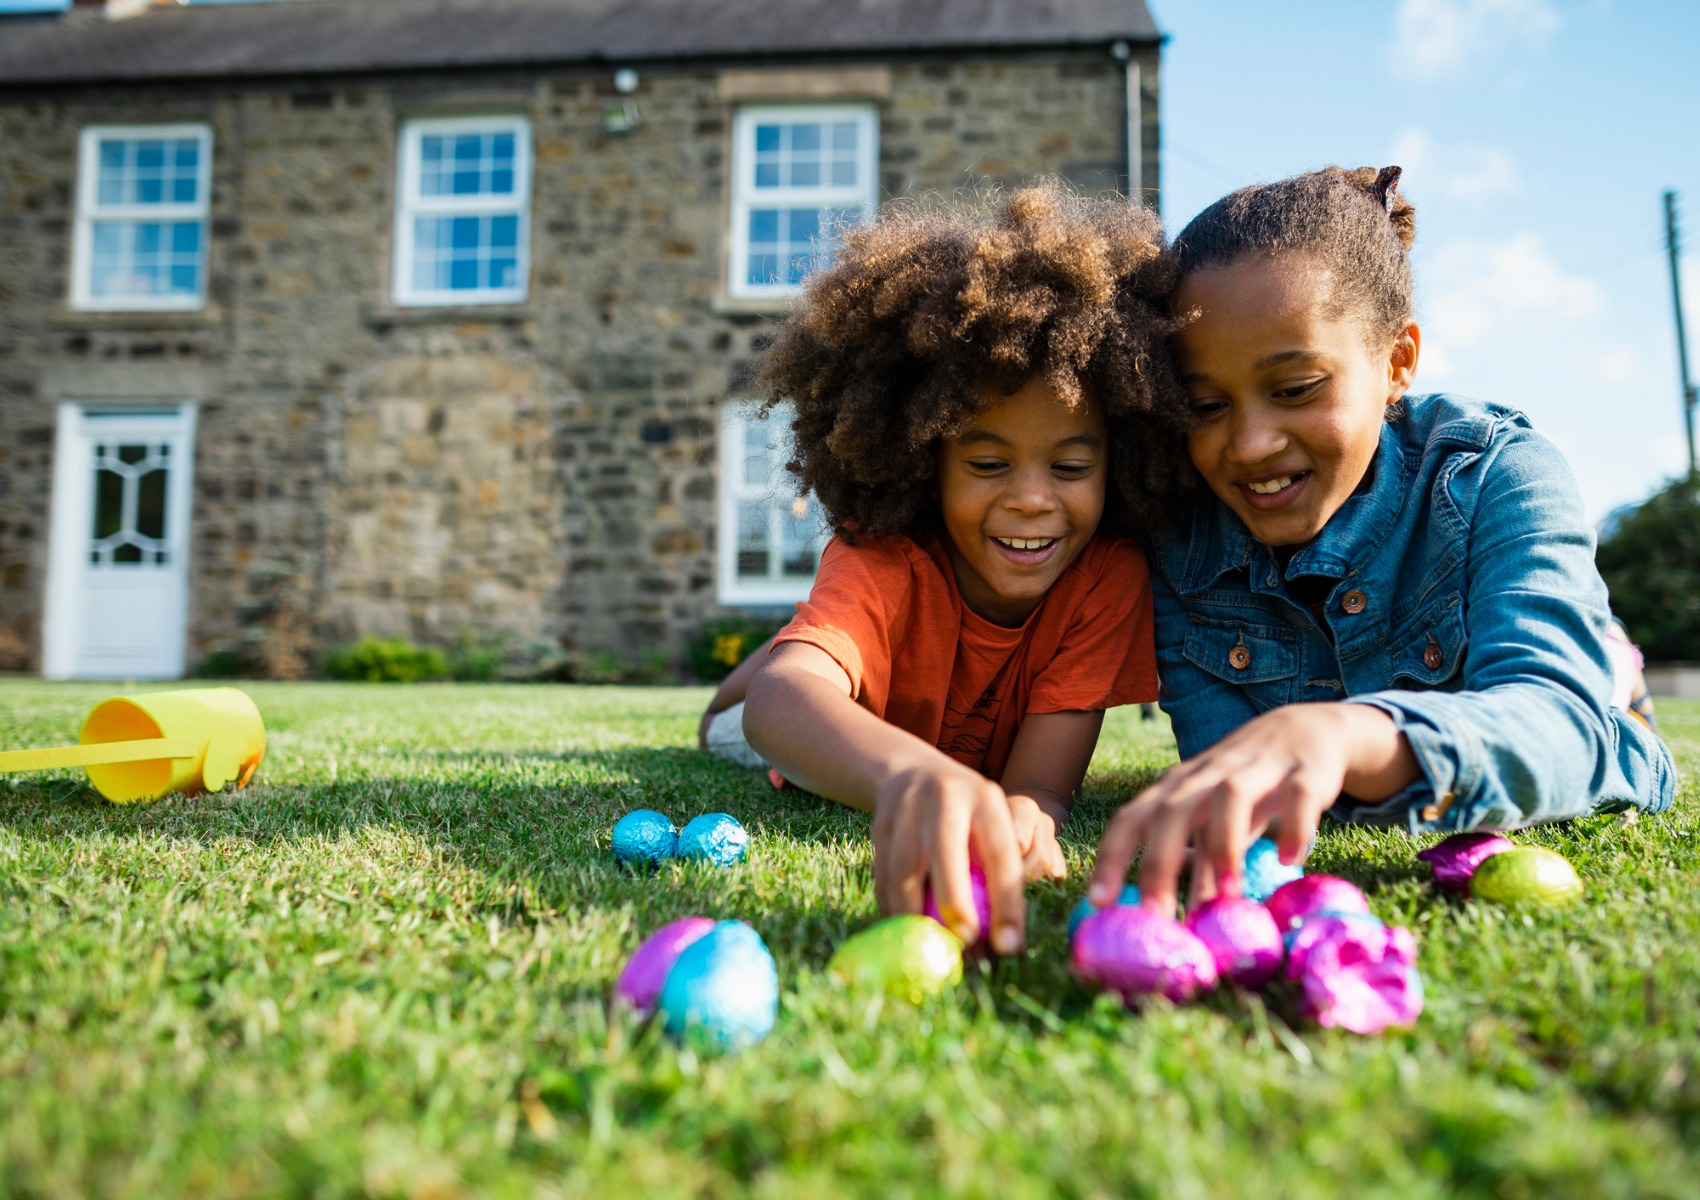 Celebrating Easter: A List of Local Easter Events